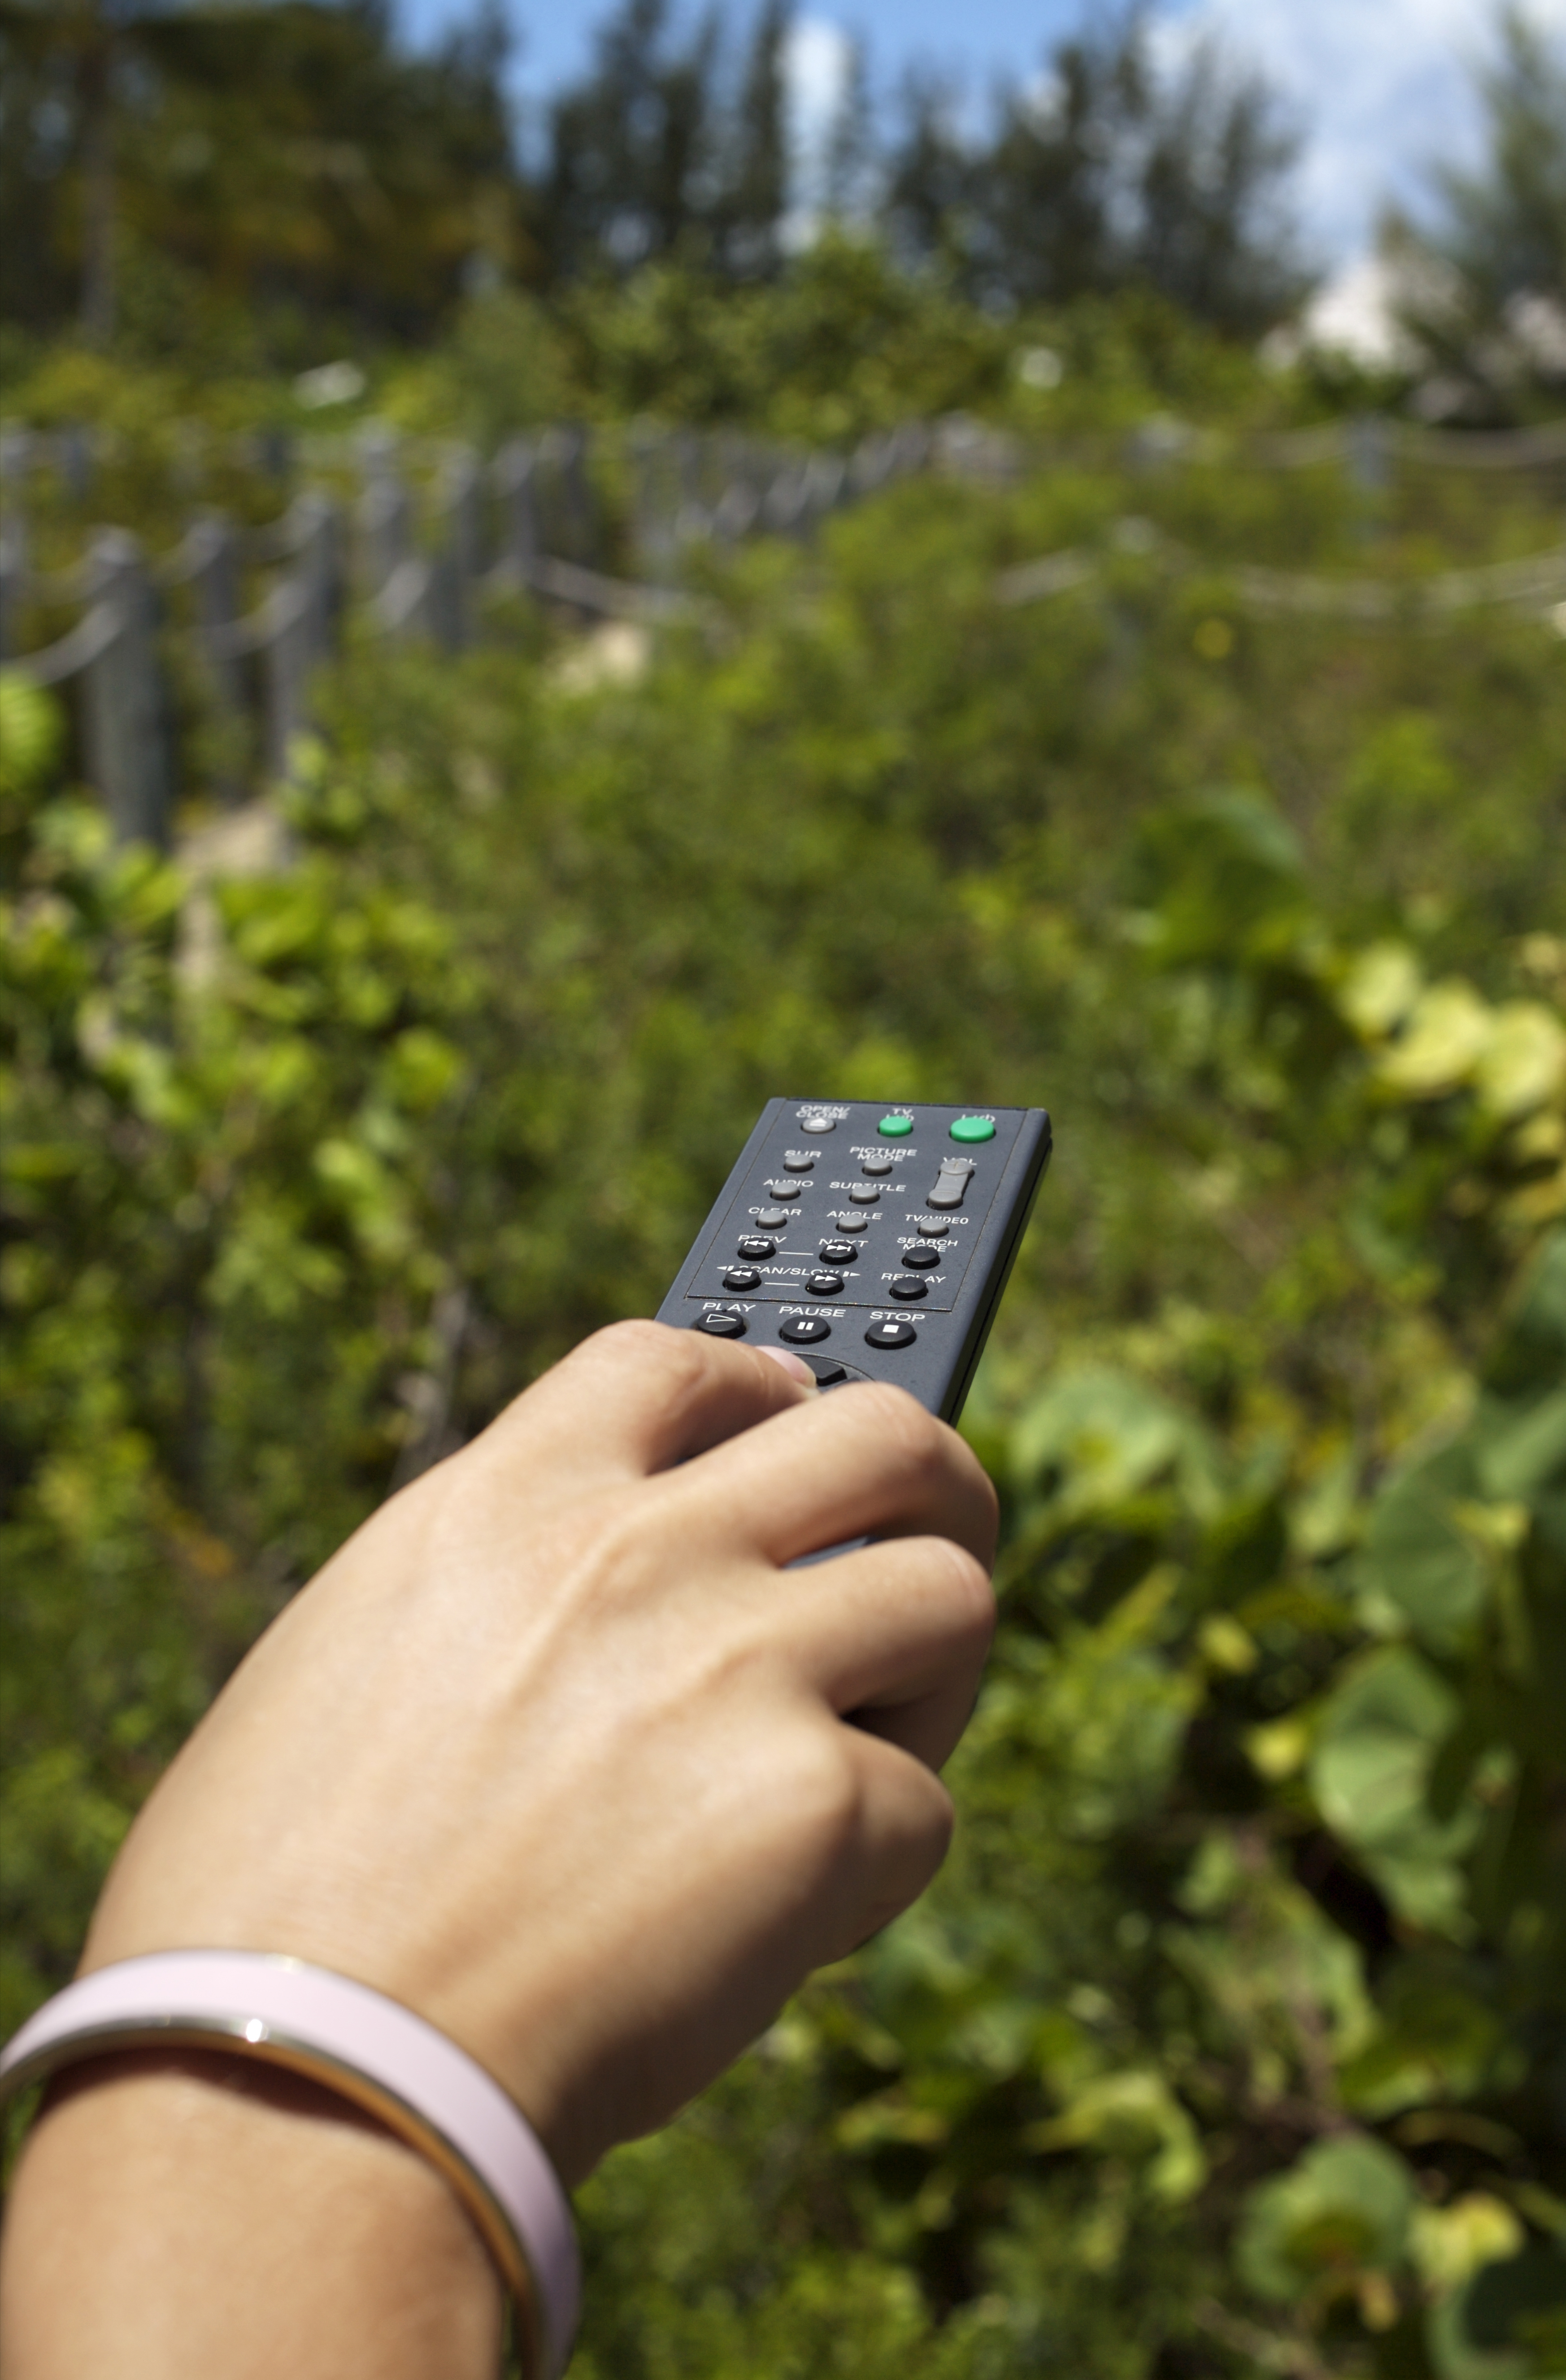 How To Watch Tv Online Or On Your Cell